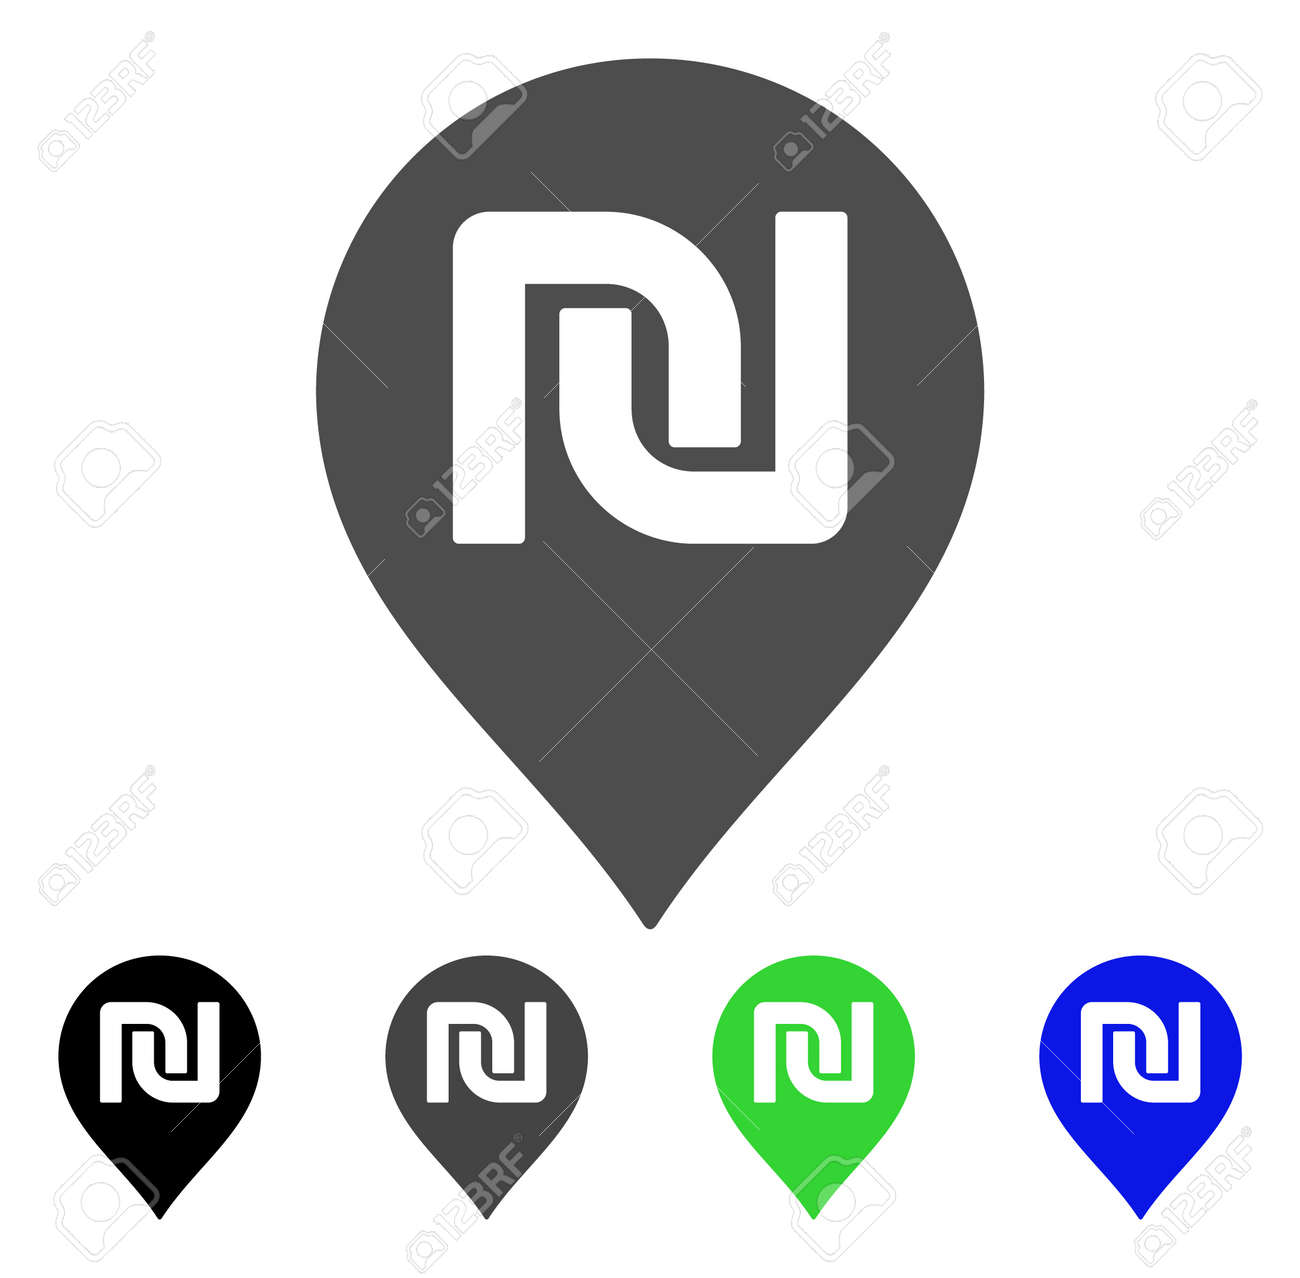 Shekel Map Marker Vector Pictograph Style Is A Flat Graphic